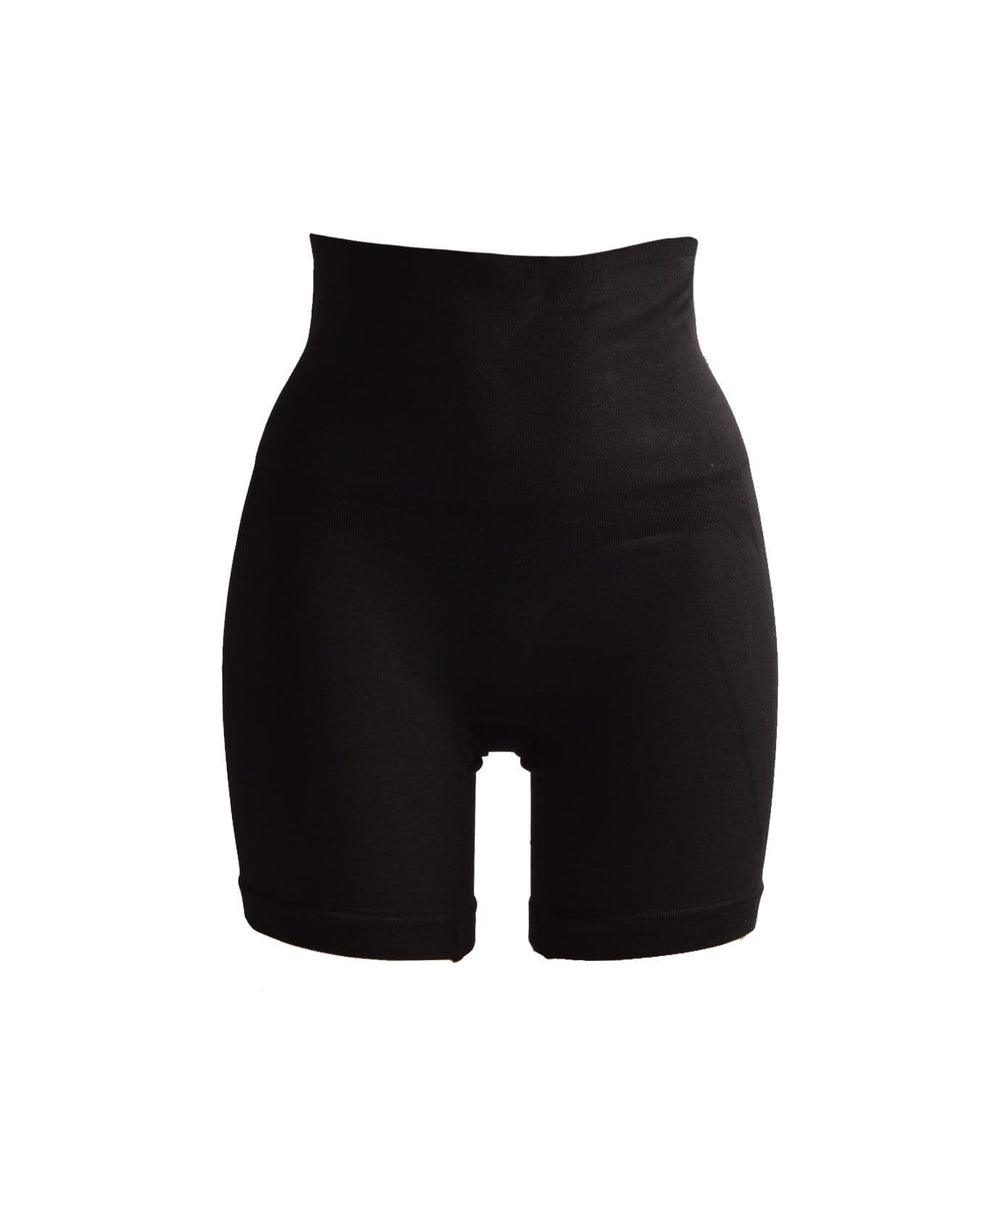 I ♥ Milan High Waisted Tummy Control Body Shaper